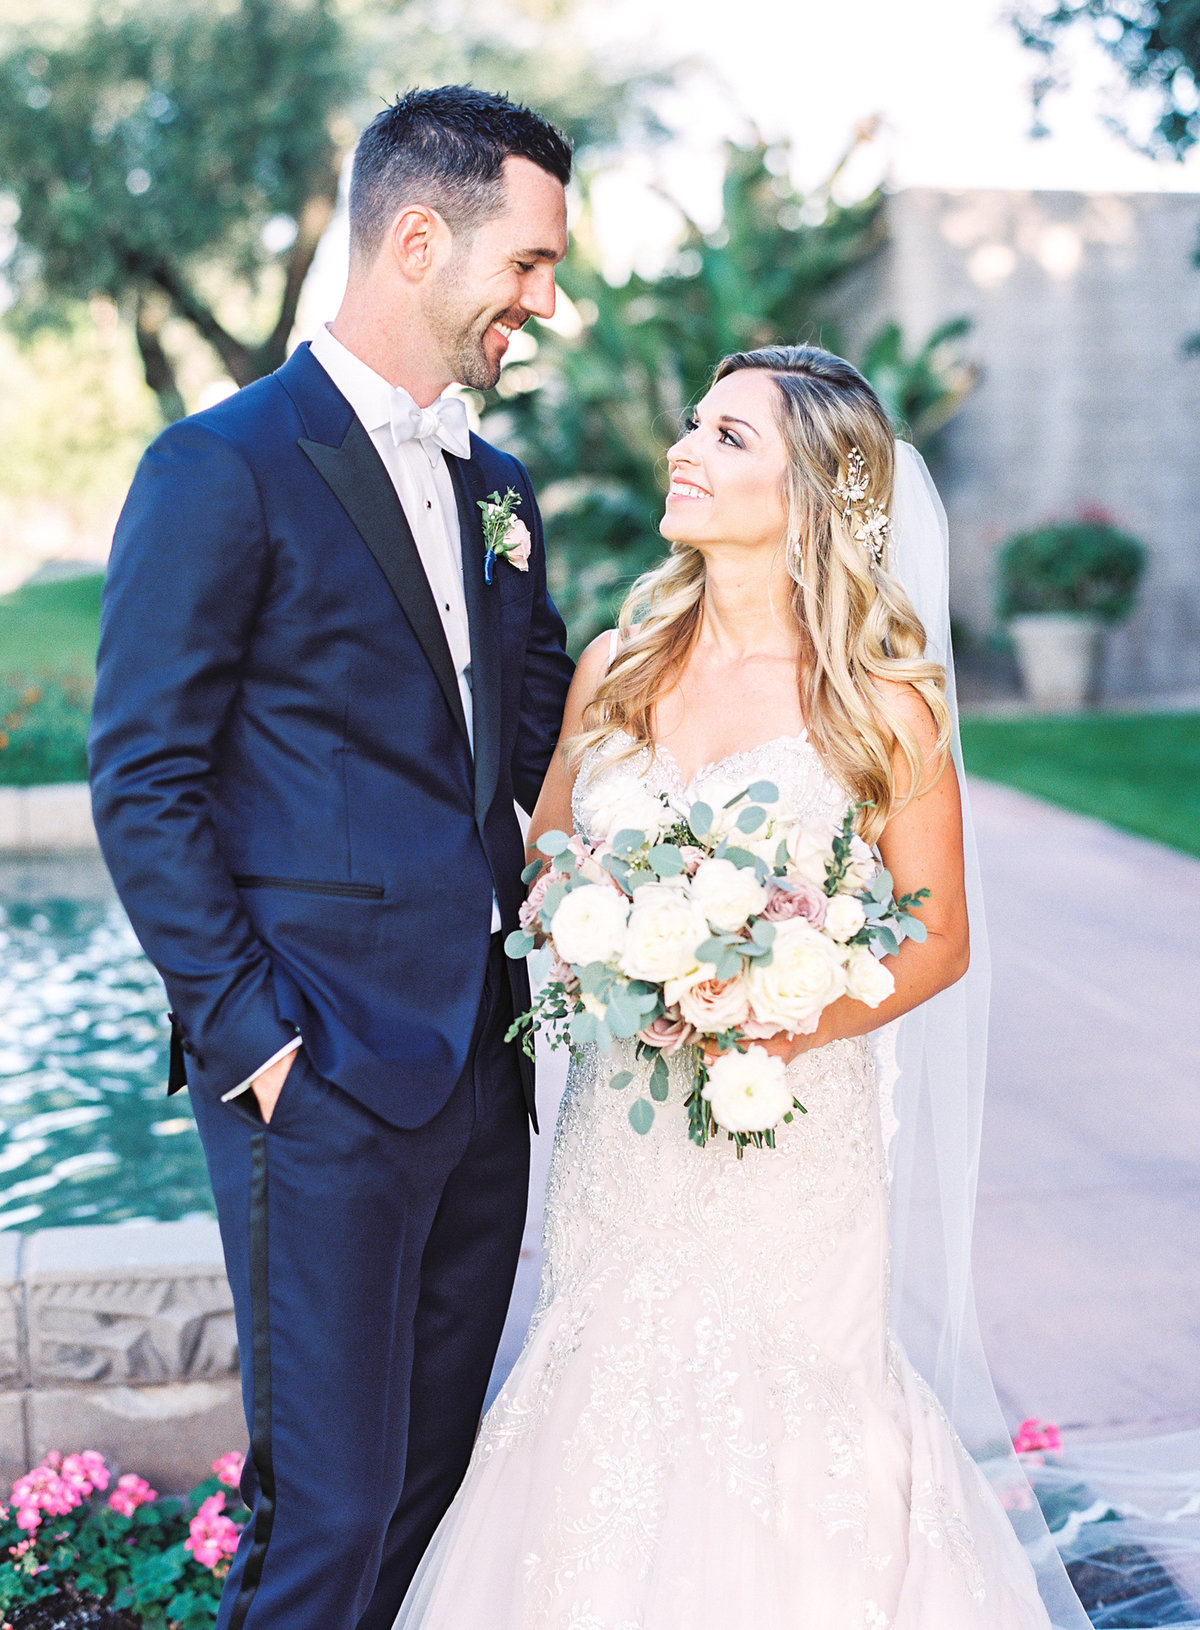 Arizona Biltmore Wedding - Mary Claire Photography-31